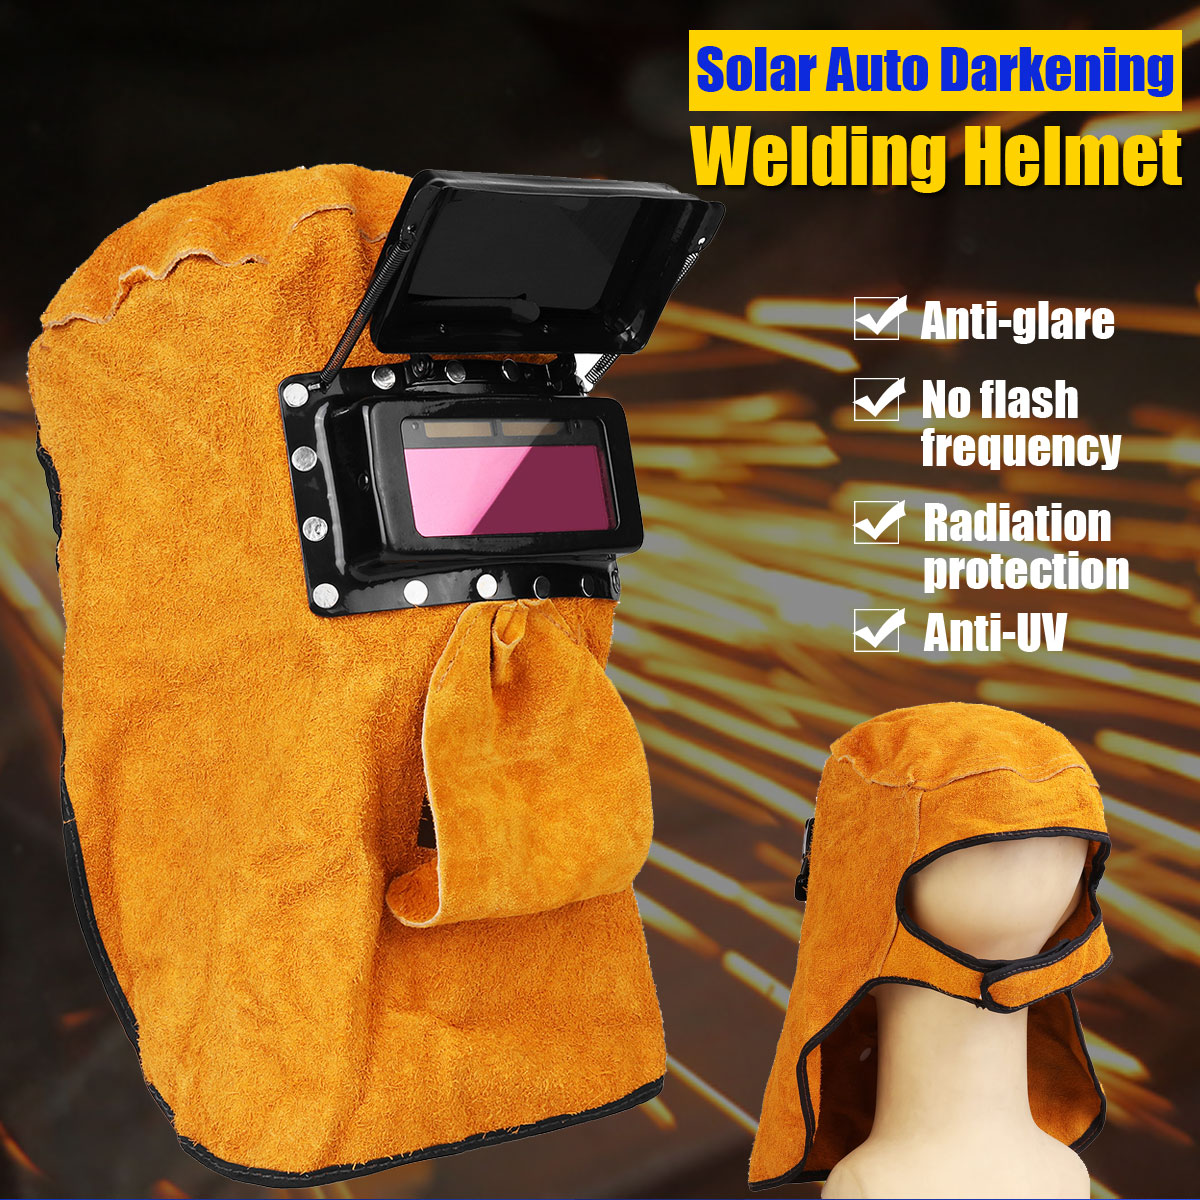 Leather Welding Helmet Mask Anti-glare Solar Auto Darkening Neck Protect Welding